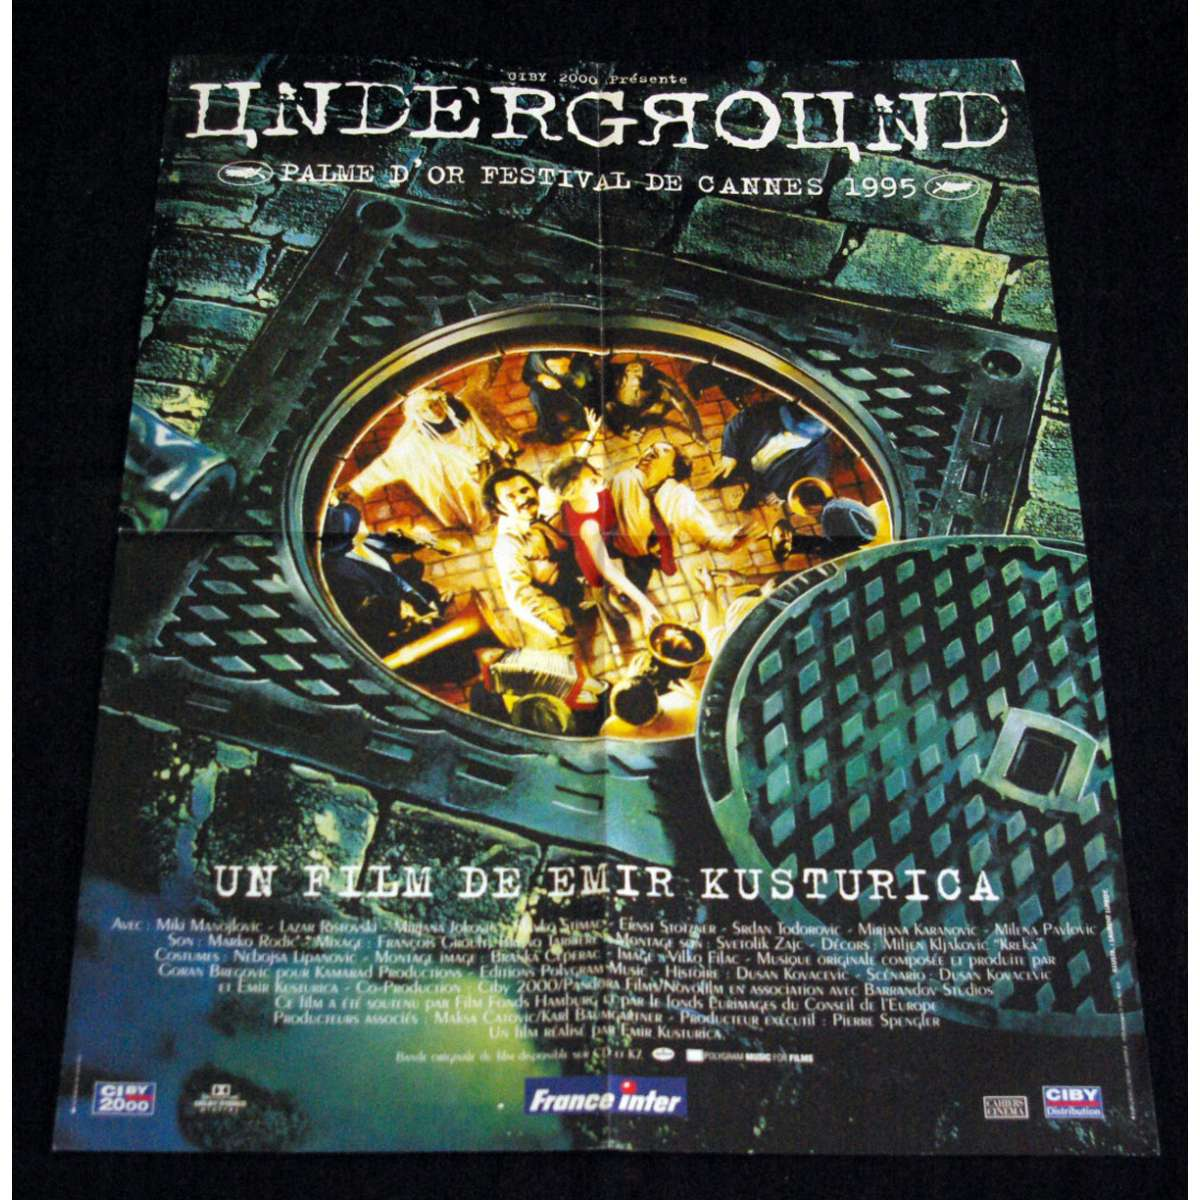 a review of underground a movie by emir kusturica This palme d'or winning film, directed by emir kusturica, uses the epic story of two friends to portray the history of yugoslavia the film follows two underground black market weapons manufacturers, marko and blacky, in belgrade.